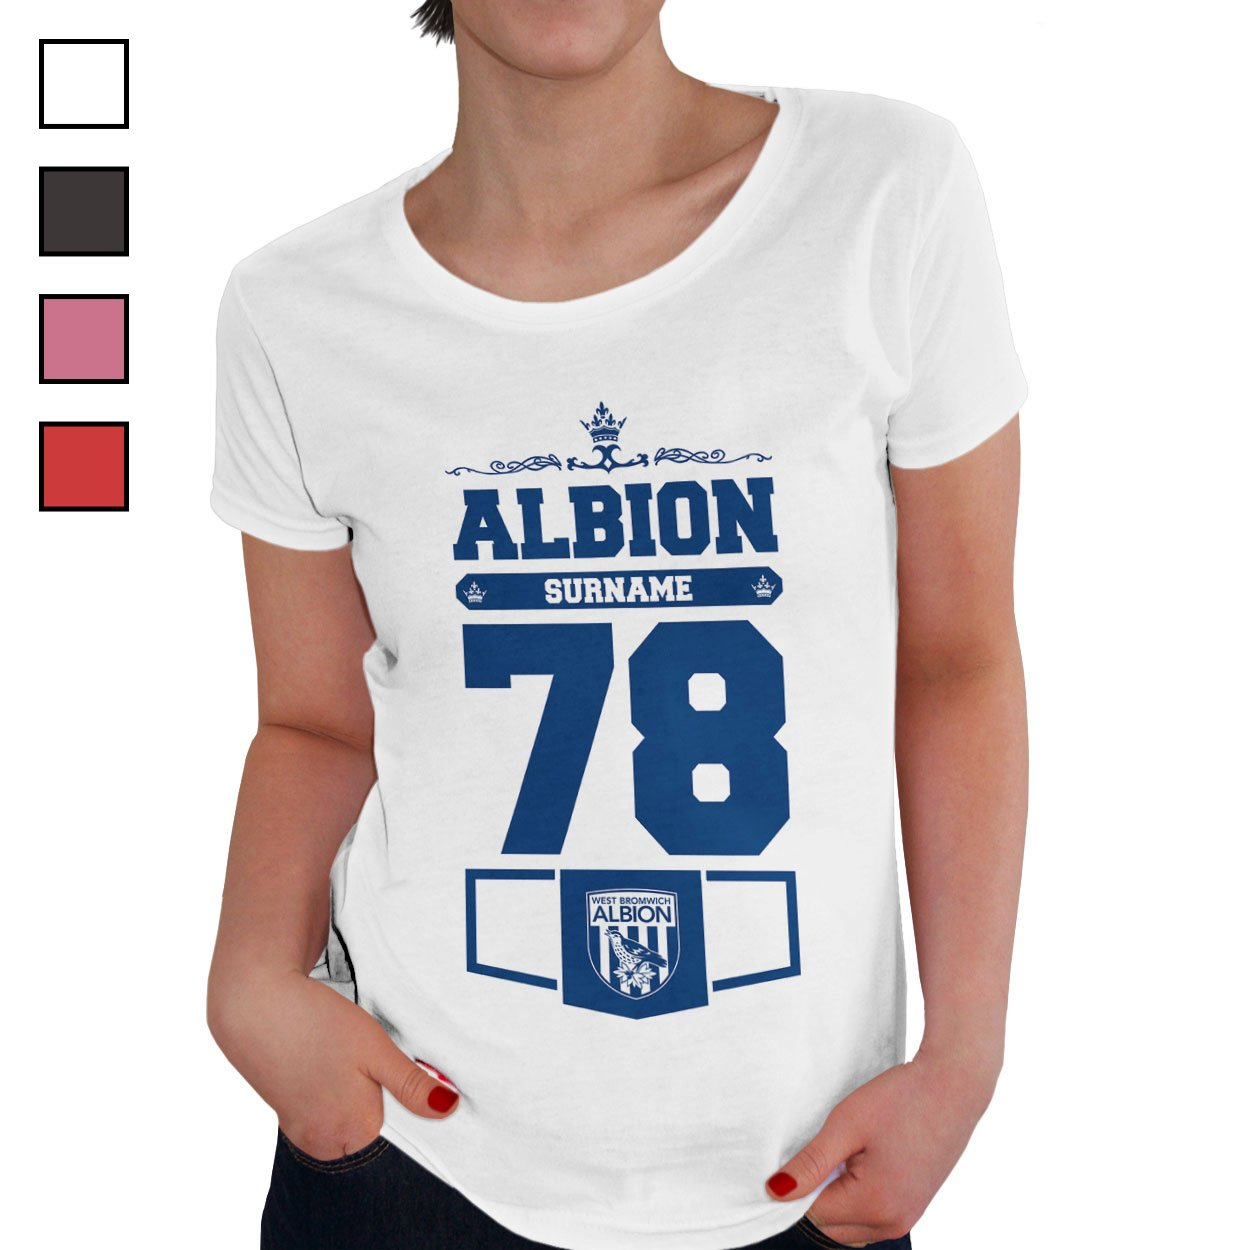 West Bromwich Albion FC Ladies Club T-Shirt